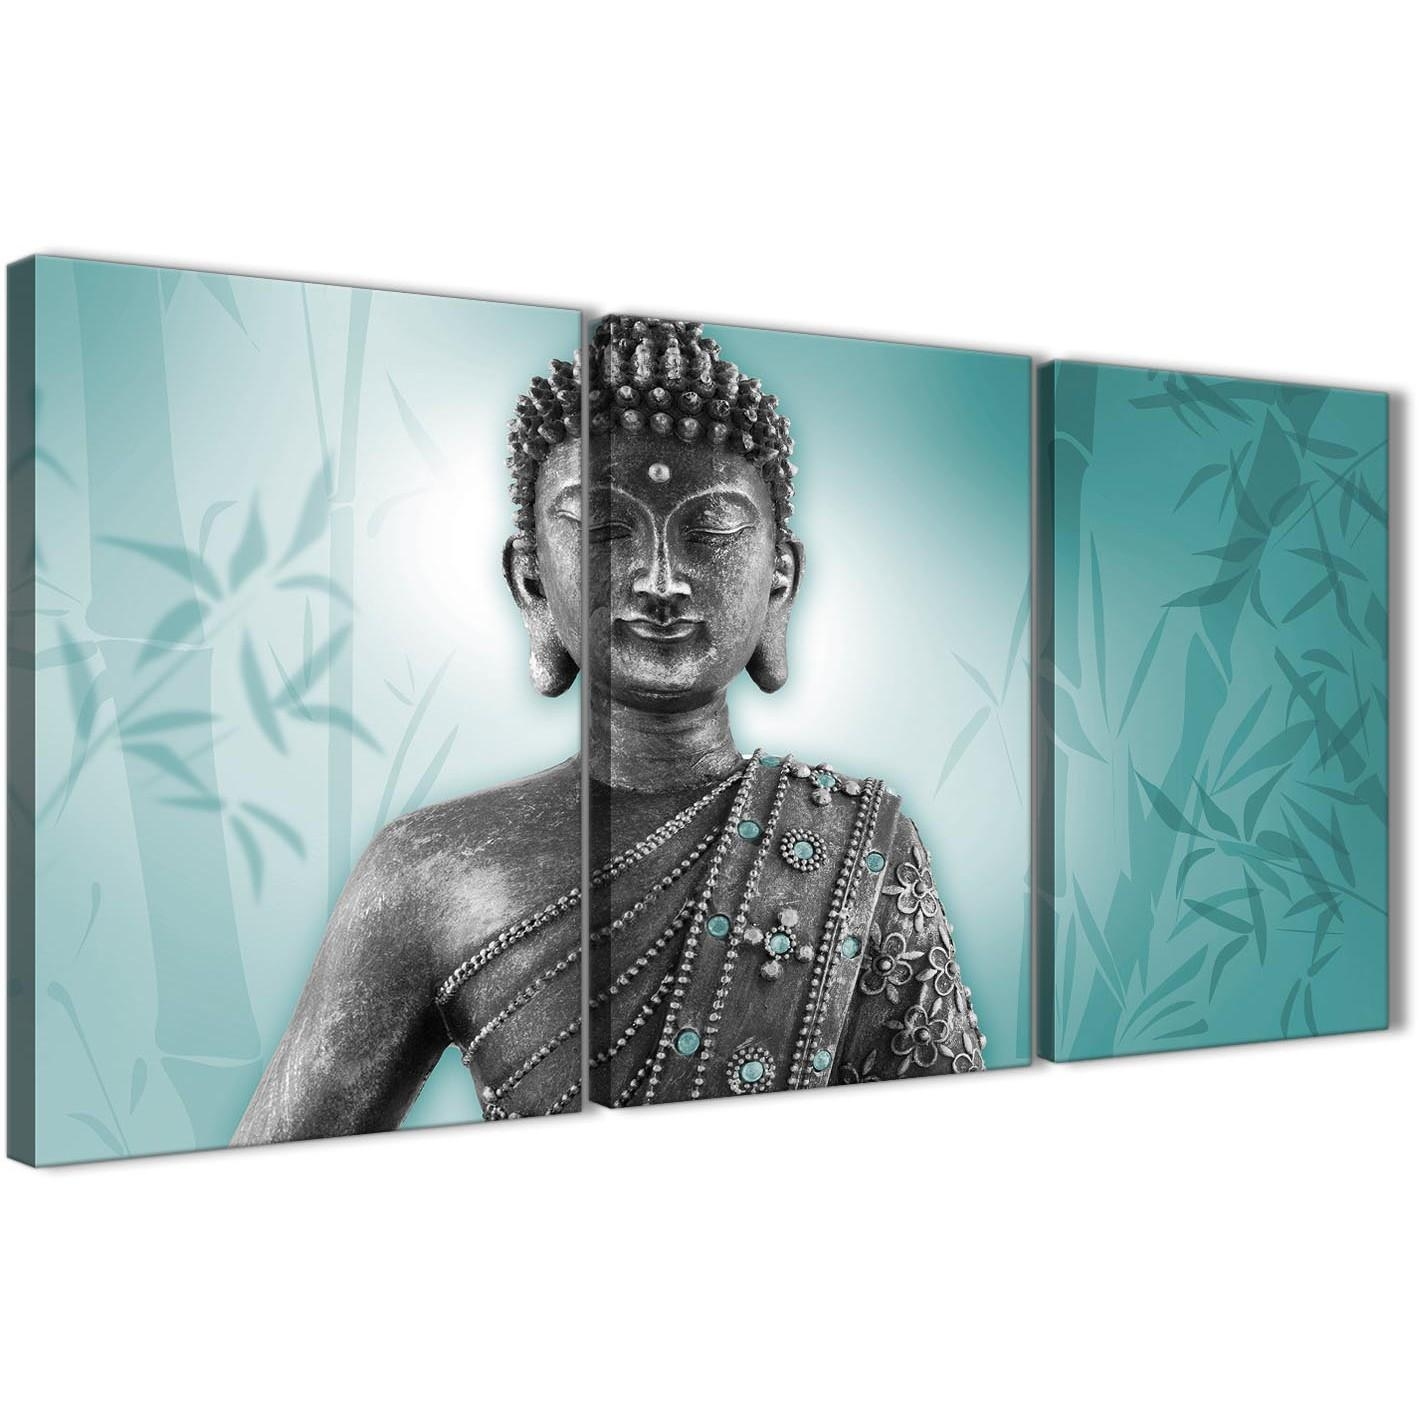 Teal And Grey Silver Canvas Art Prints Of Buddha – Split Set Of 3 Intended For Silver Buddha Wall Art (View 11 of 20)